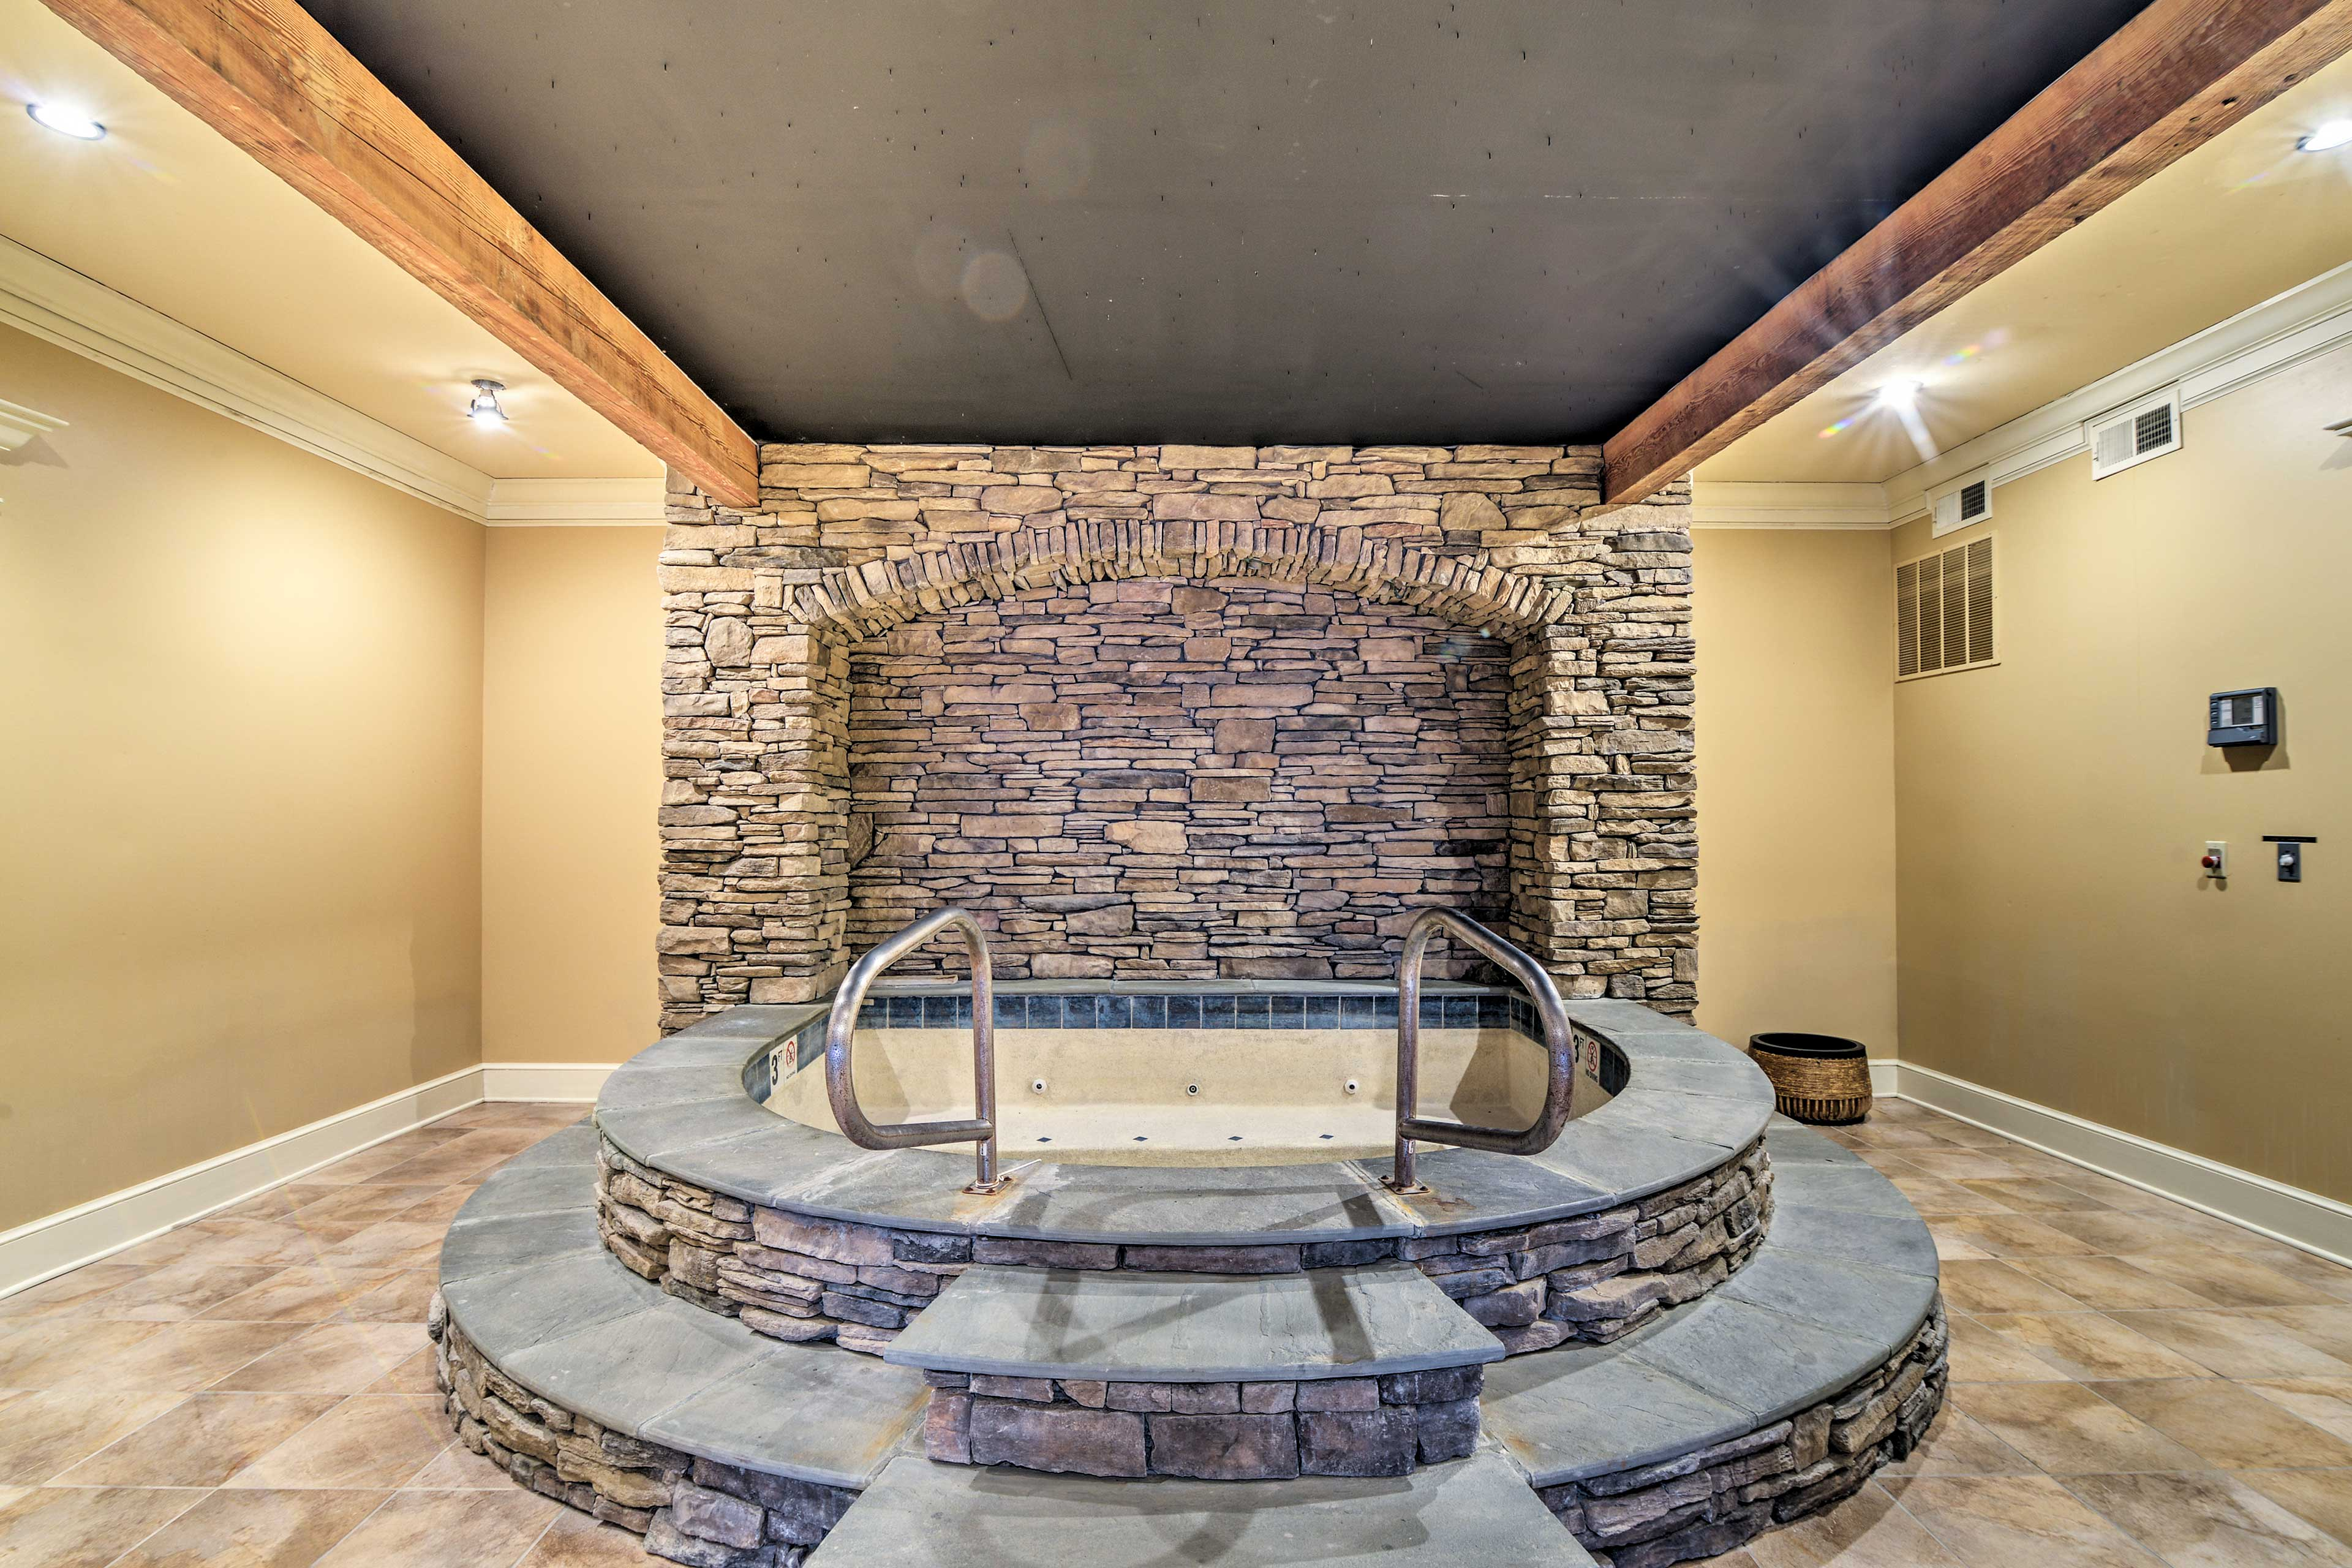 Soak in the hot tub after a long day of exploring.